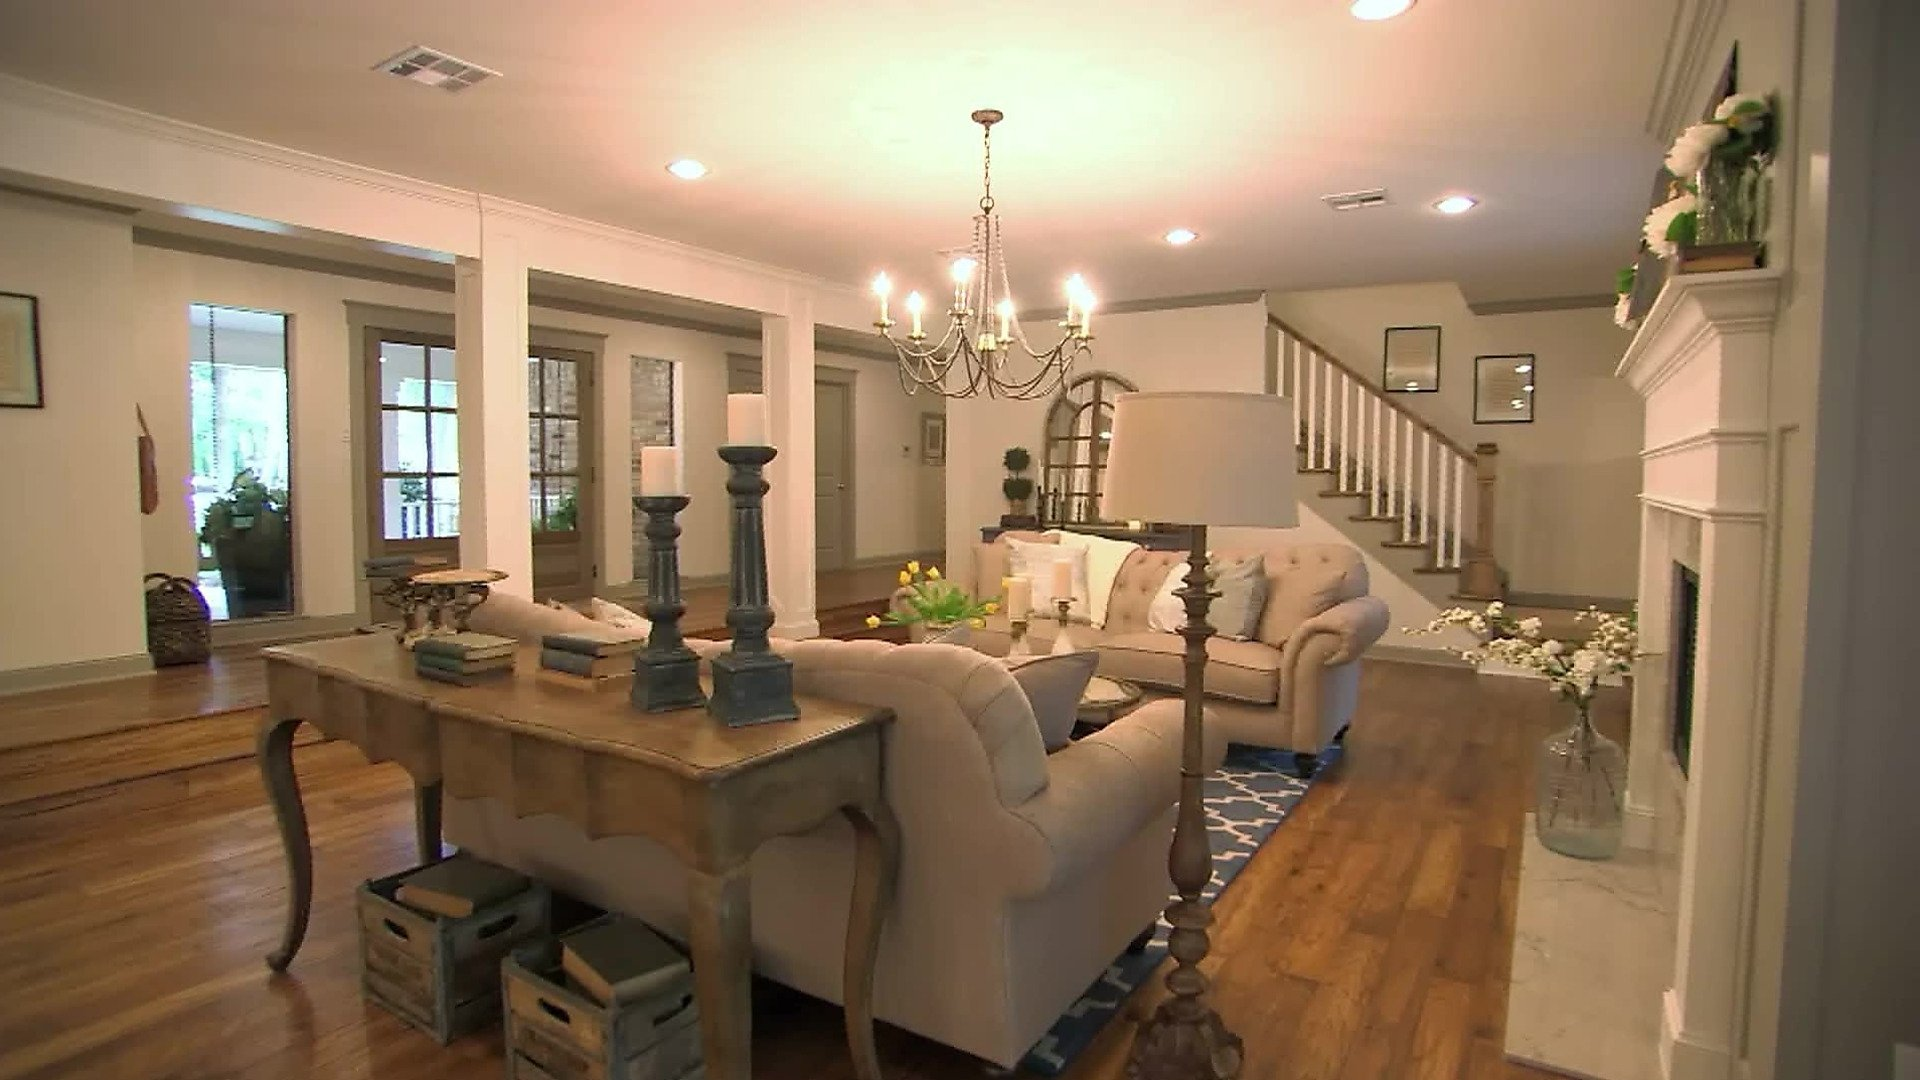 10 Stylish Hgtv Living Room Decorating Ideas living room colors design styles decorating tips and inspiration 2021